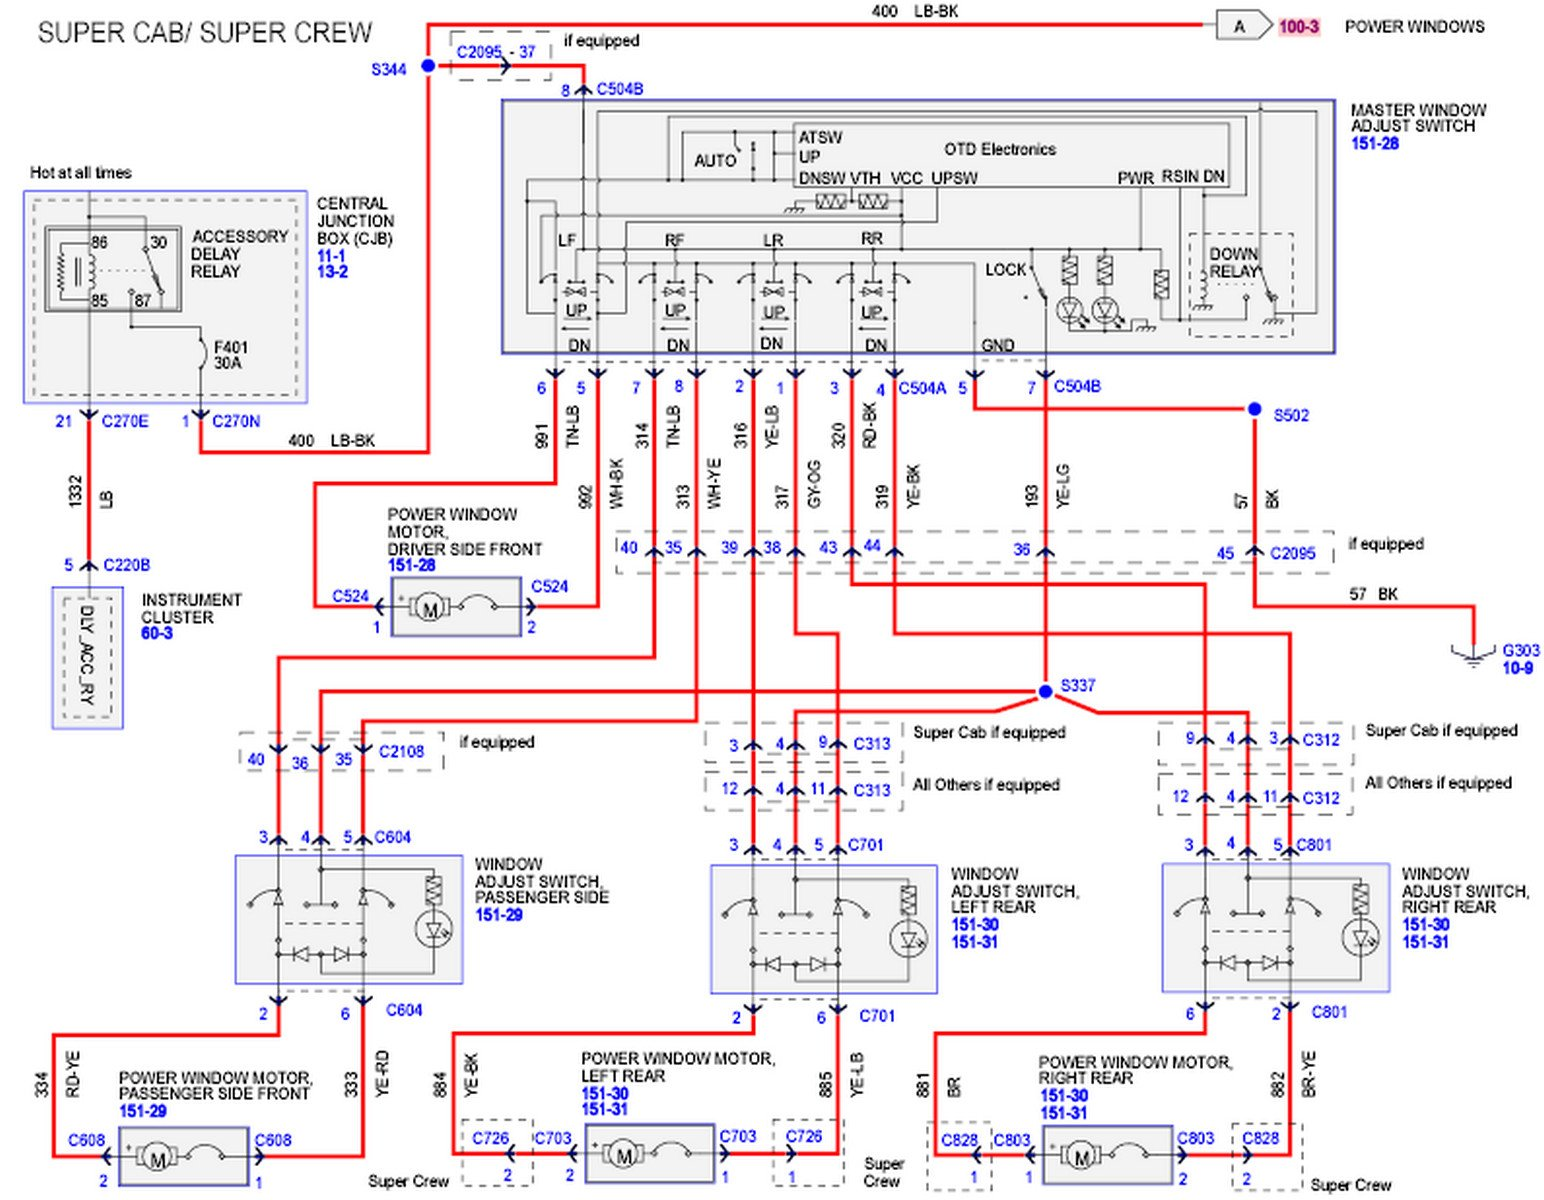 2010 F150 Wiring Diagram : Ford f power window problems